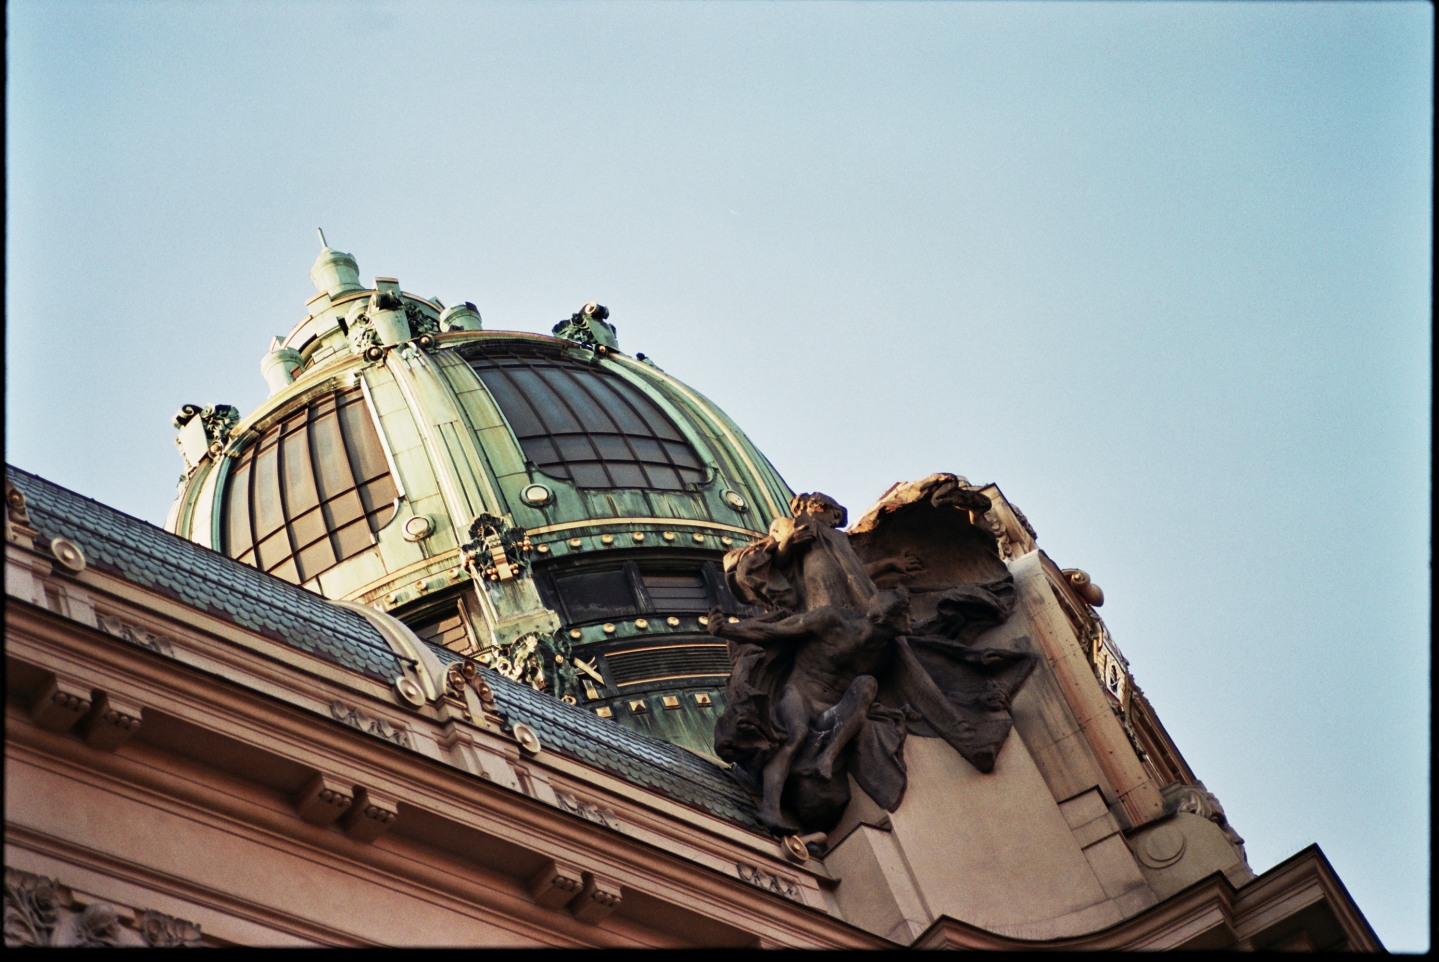 Old copper roof in Prague. Shot on 35mm.